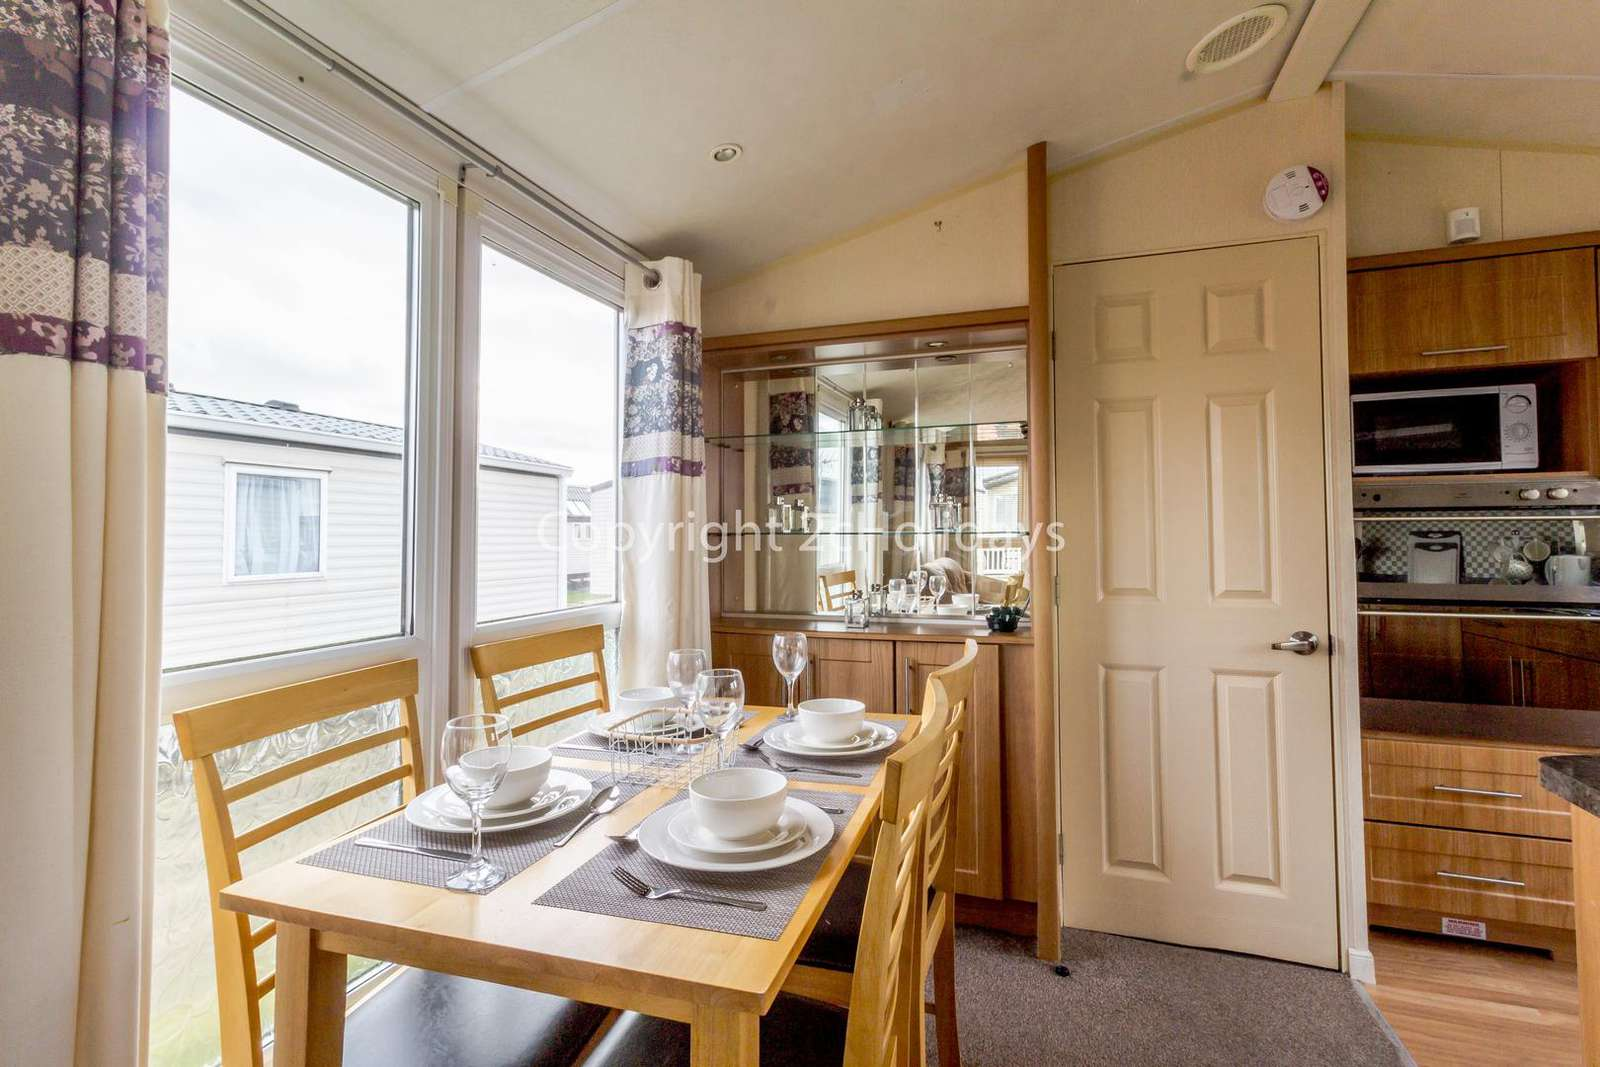 Open plan kitchen/diner, ideal for families!